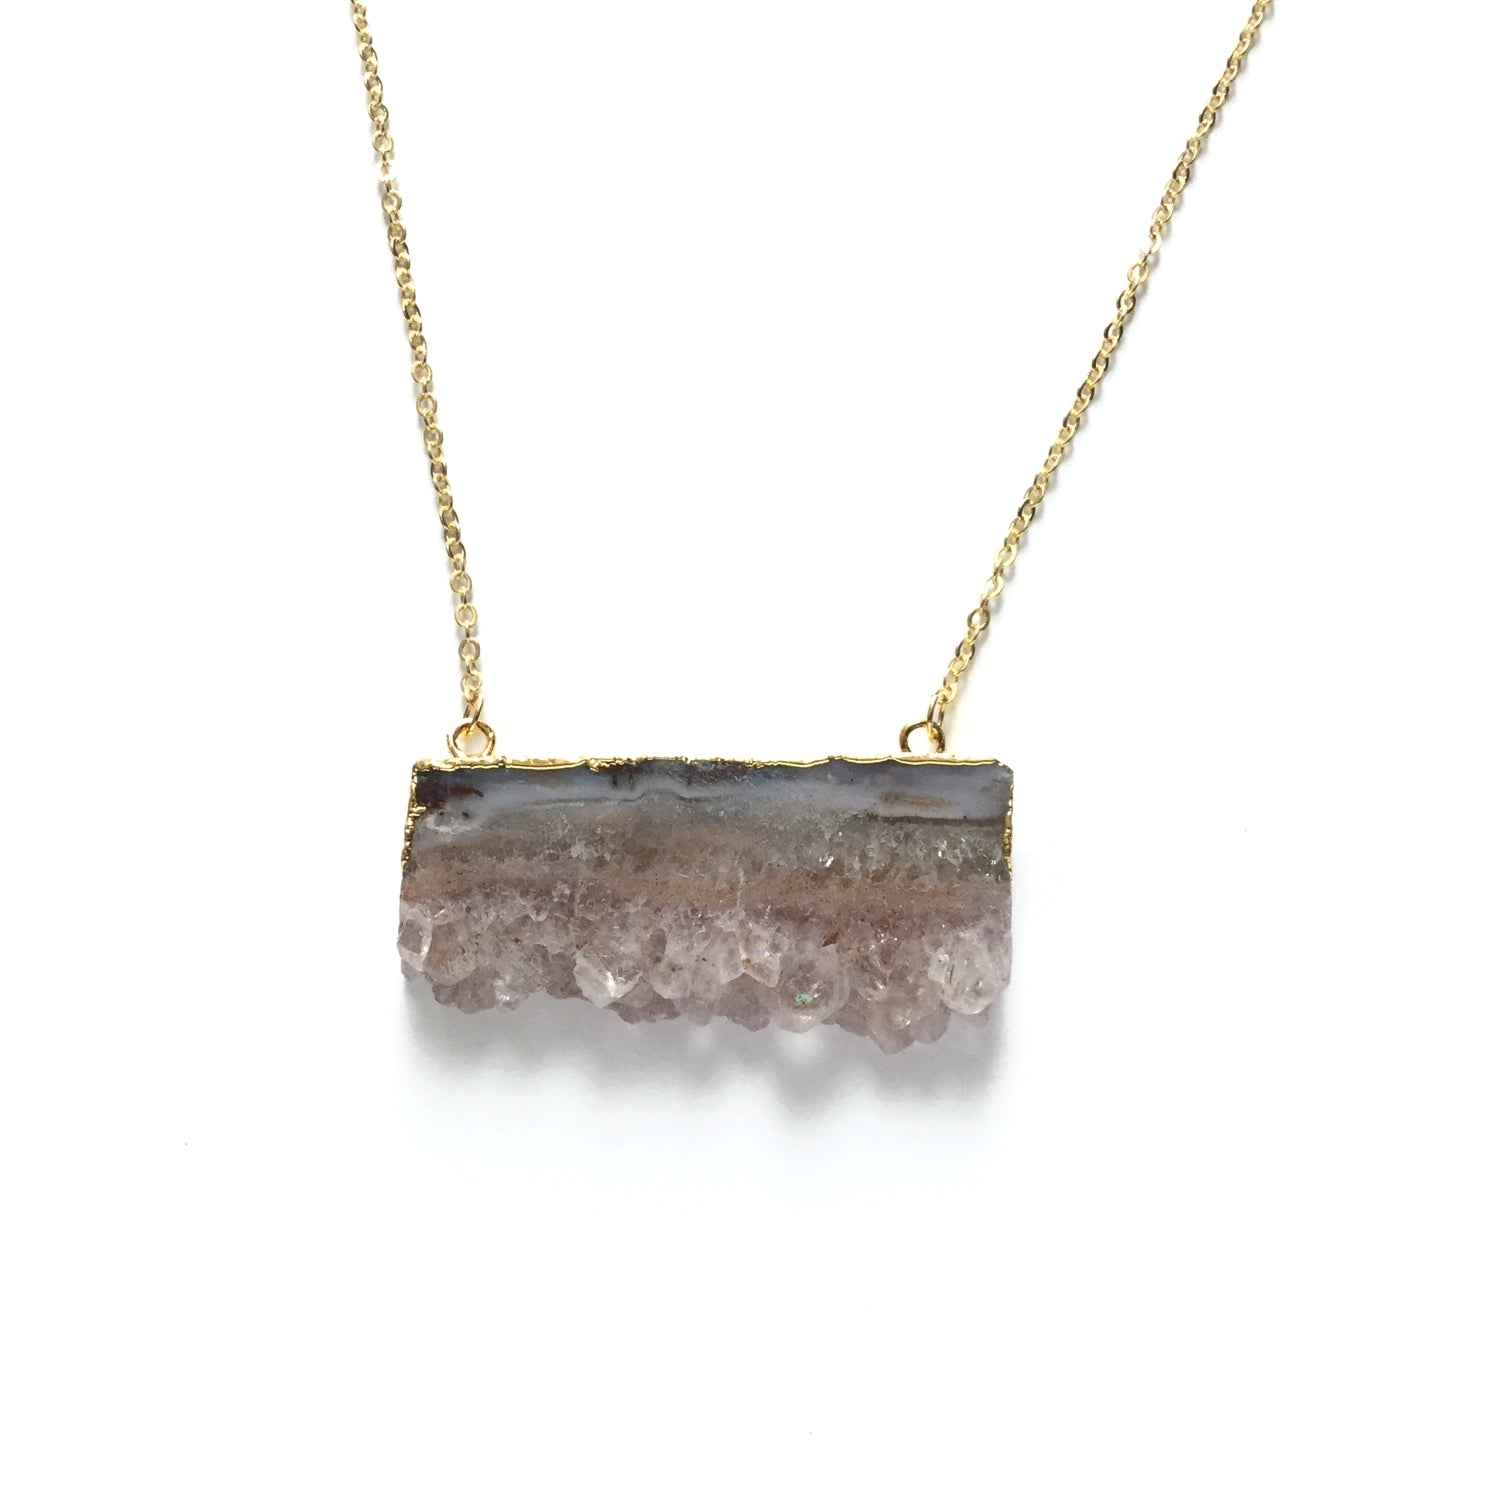 Natural Occo gemstone druzy slice agate gold electroplated pendant necklace